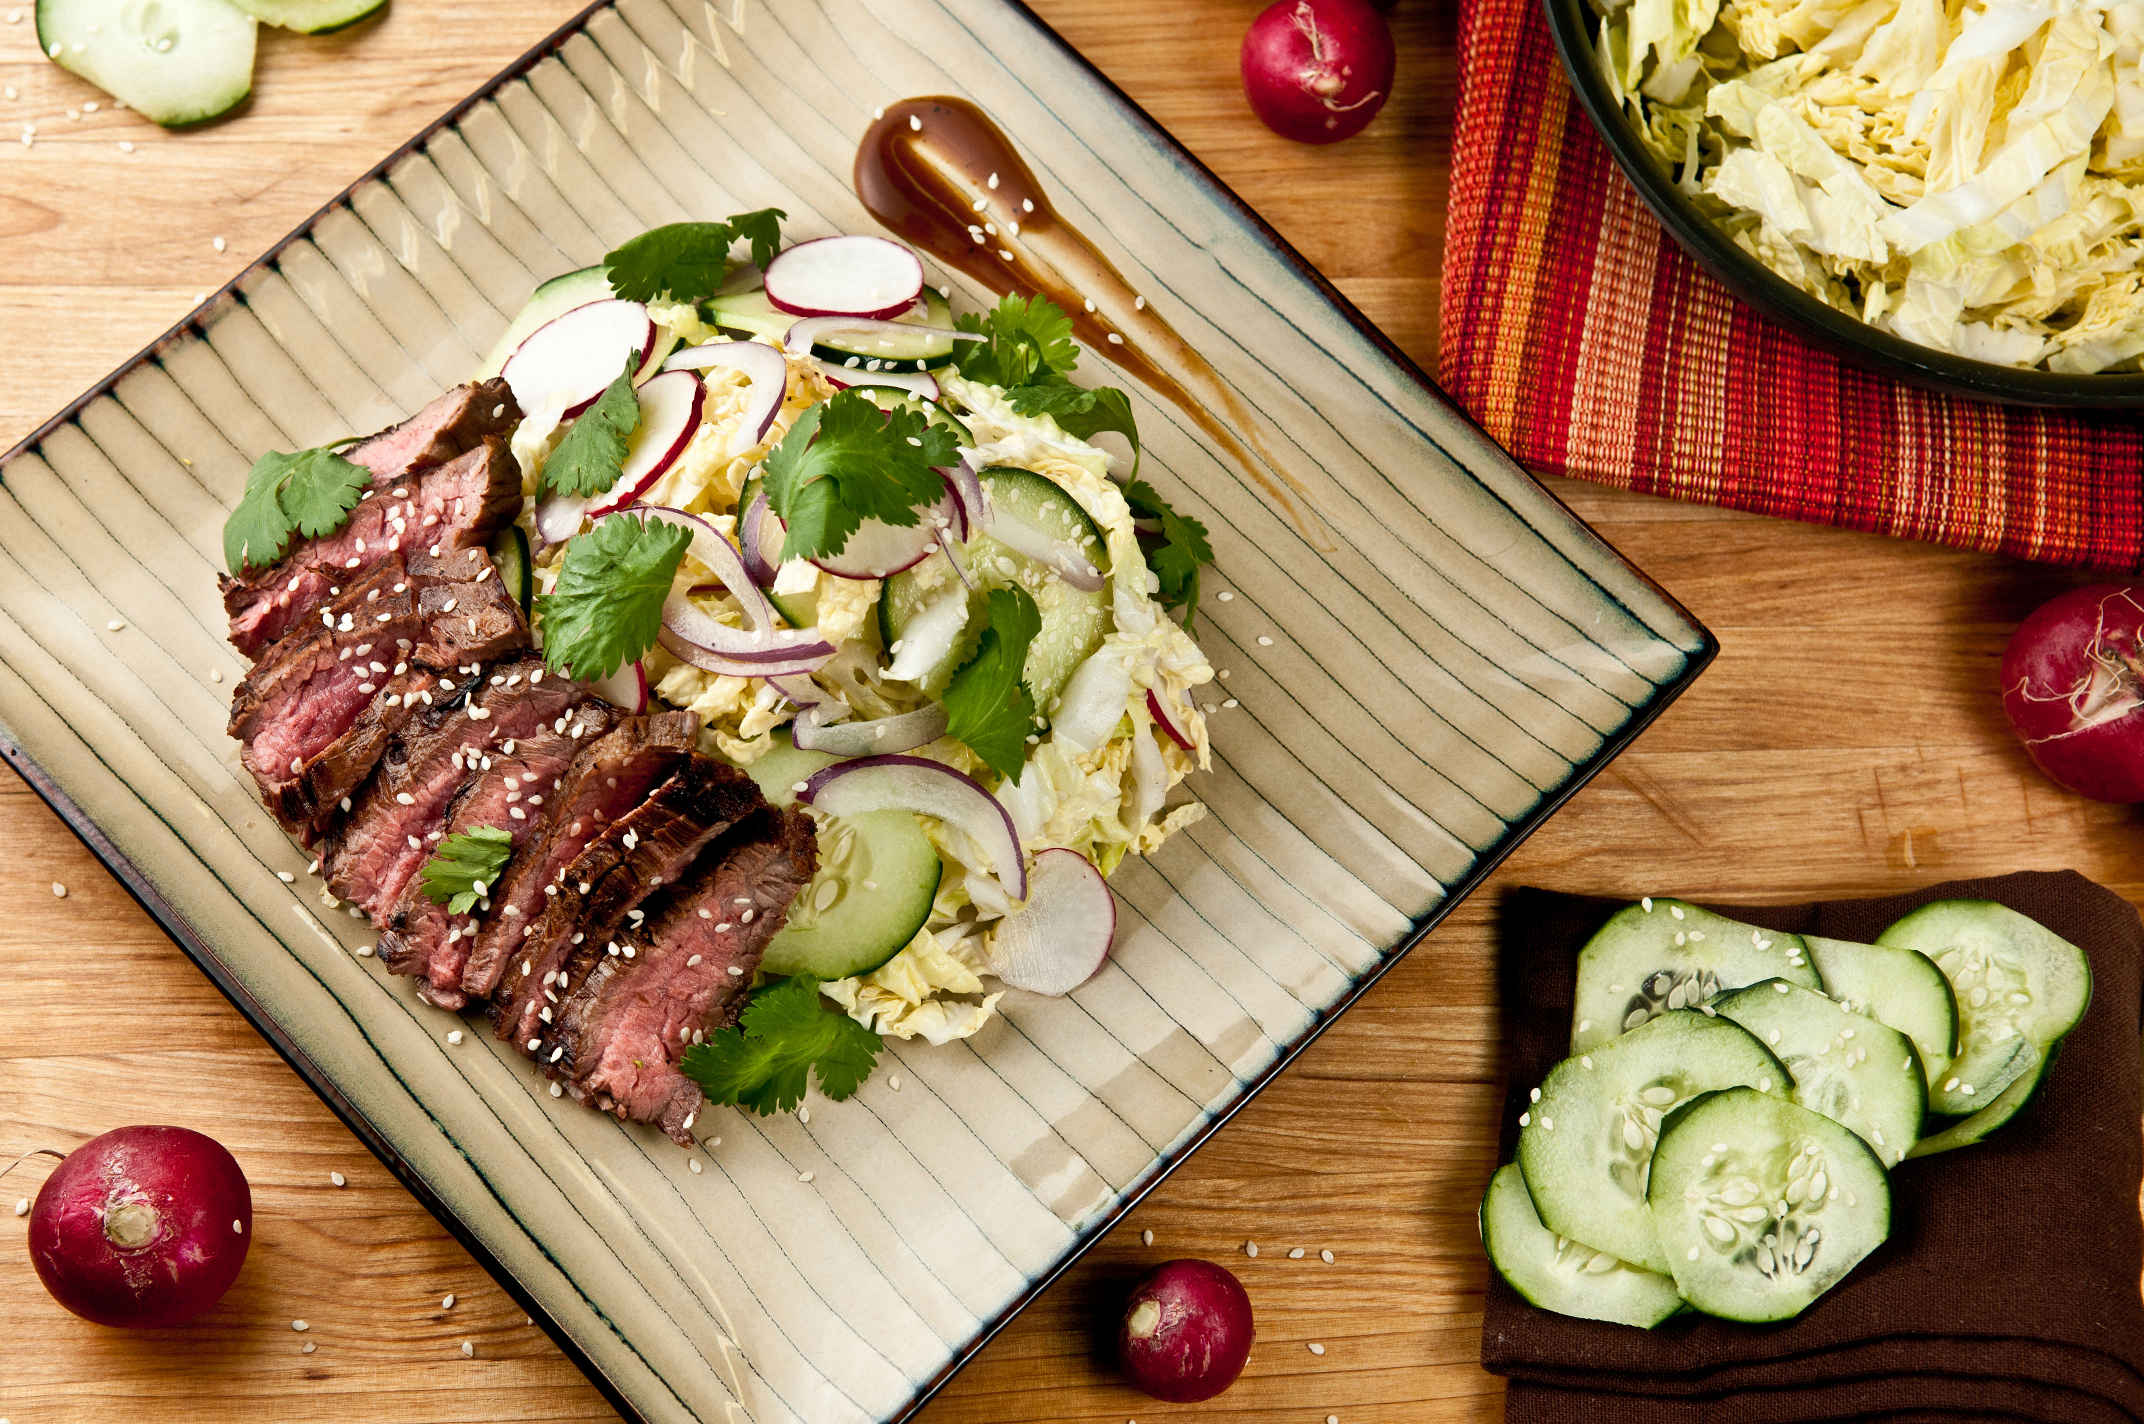 Hoisin_steak_salad_plated